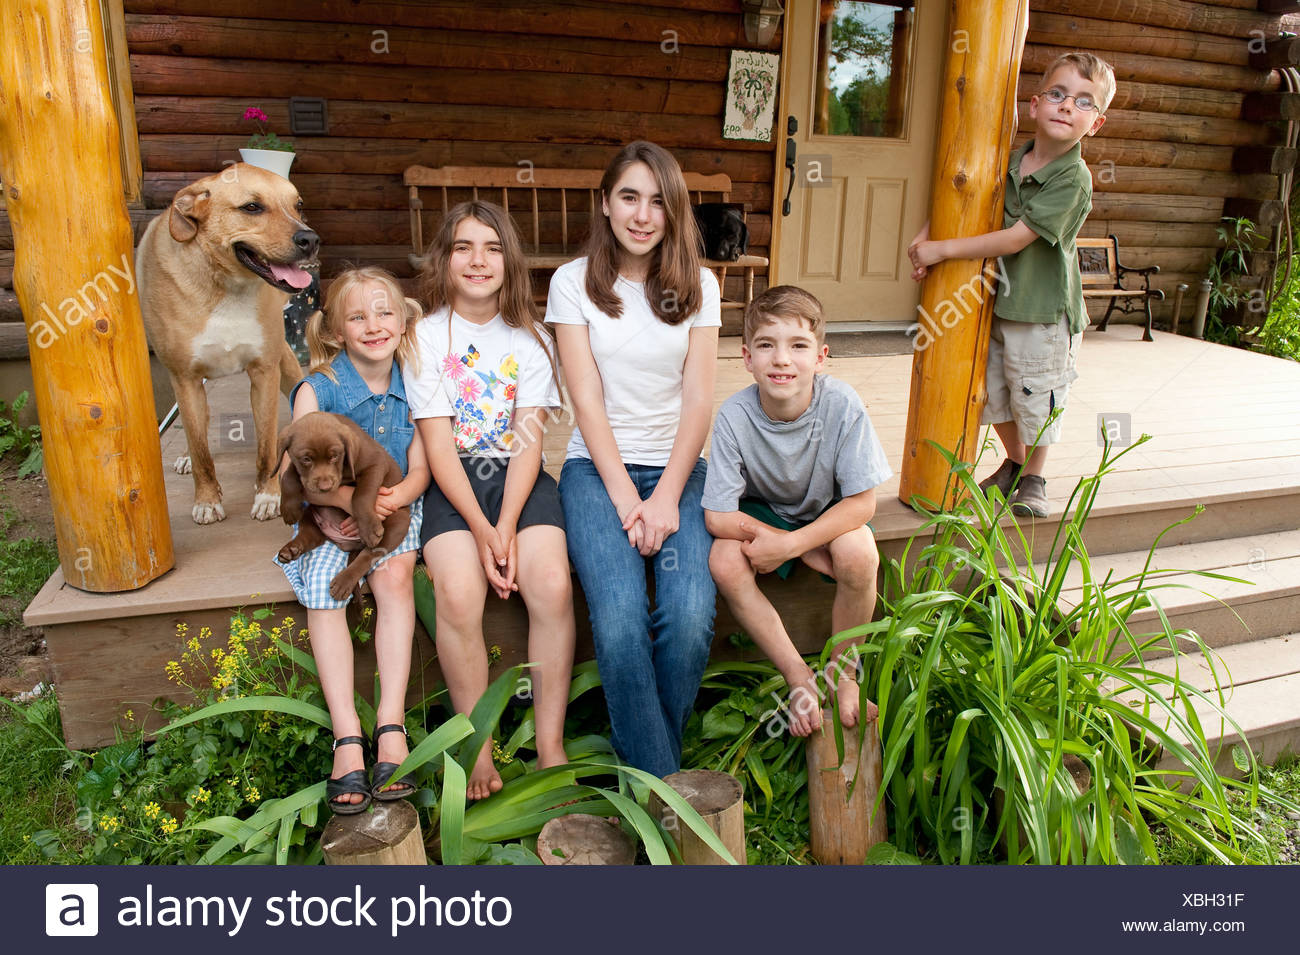 Family portrait in front of home - Stock Image